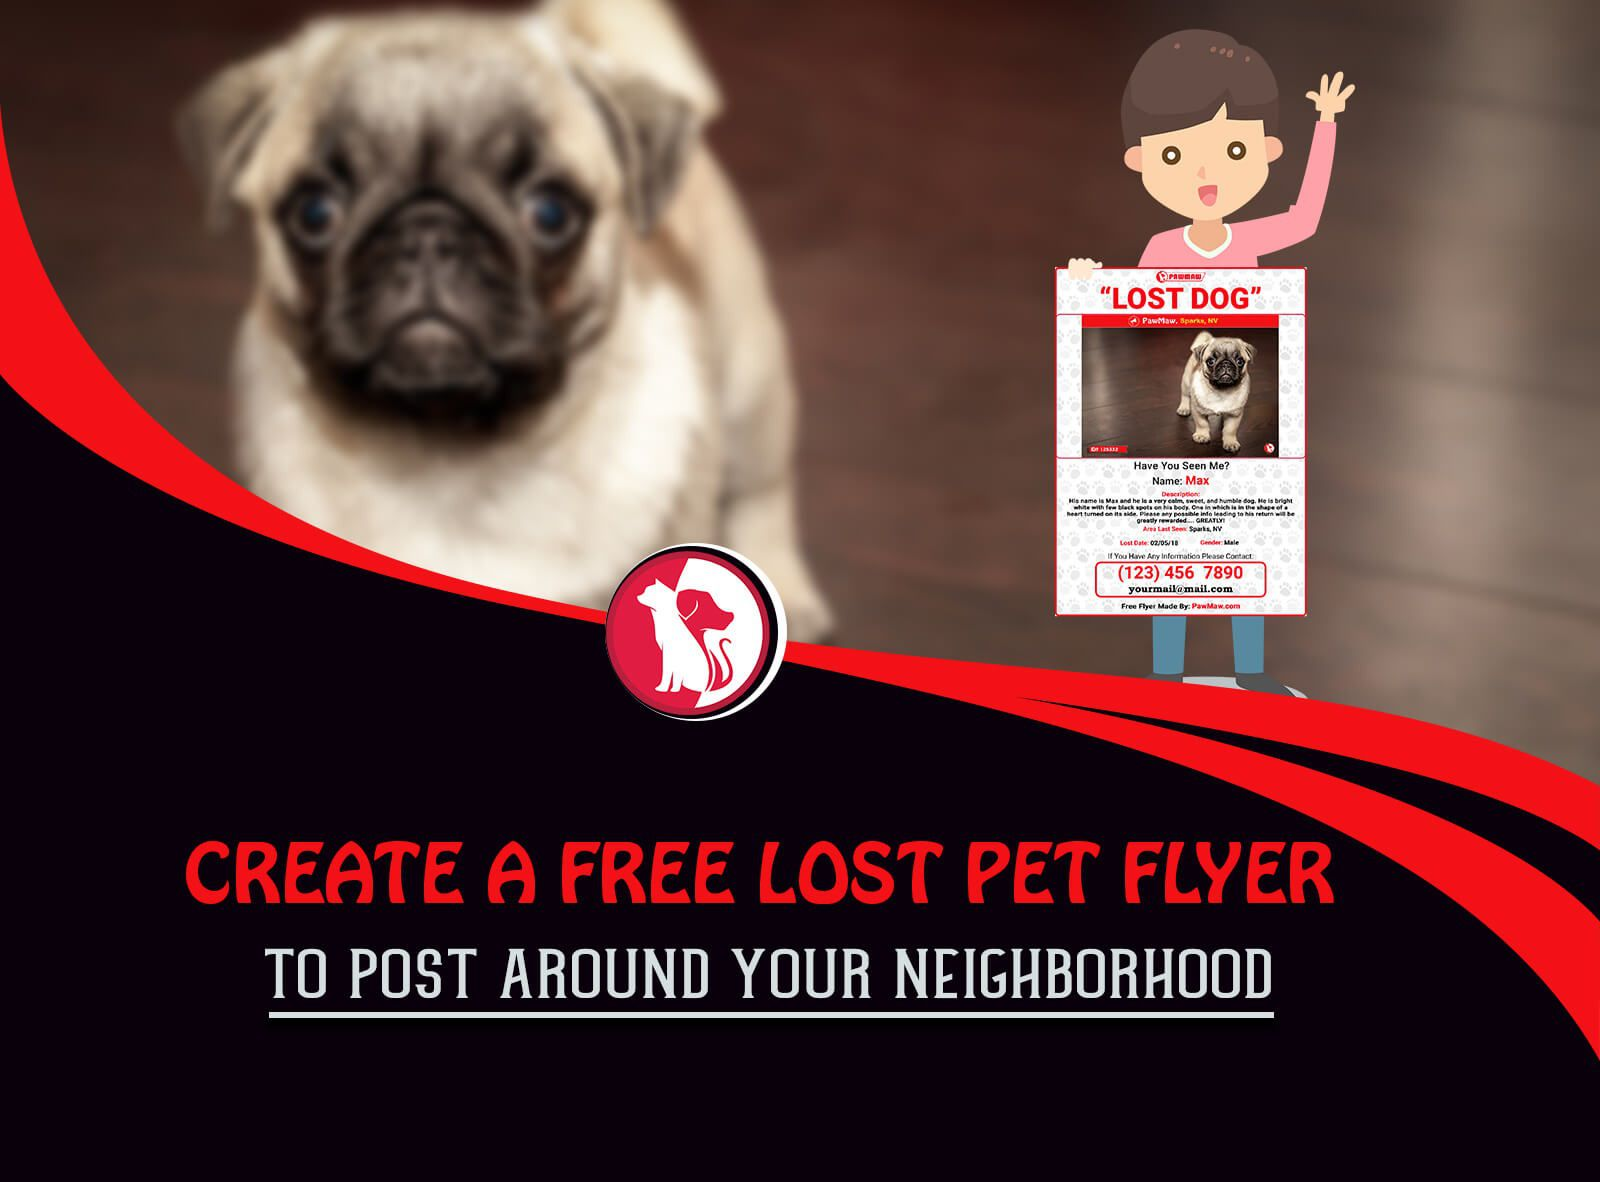 002 Remarkable Lost Dog Flyer Template Concept  Printable Missing PetFull